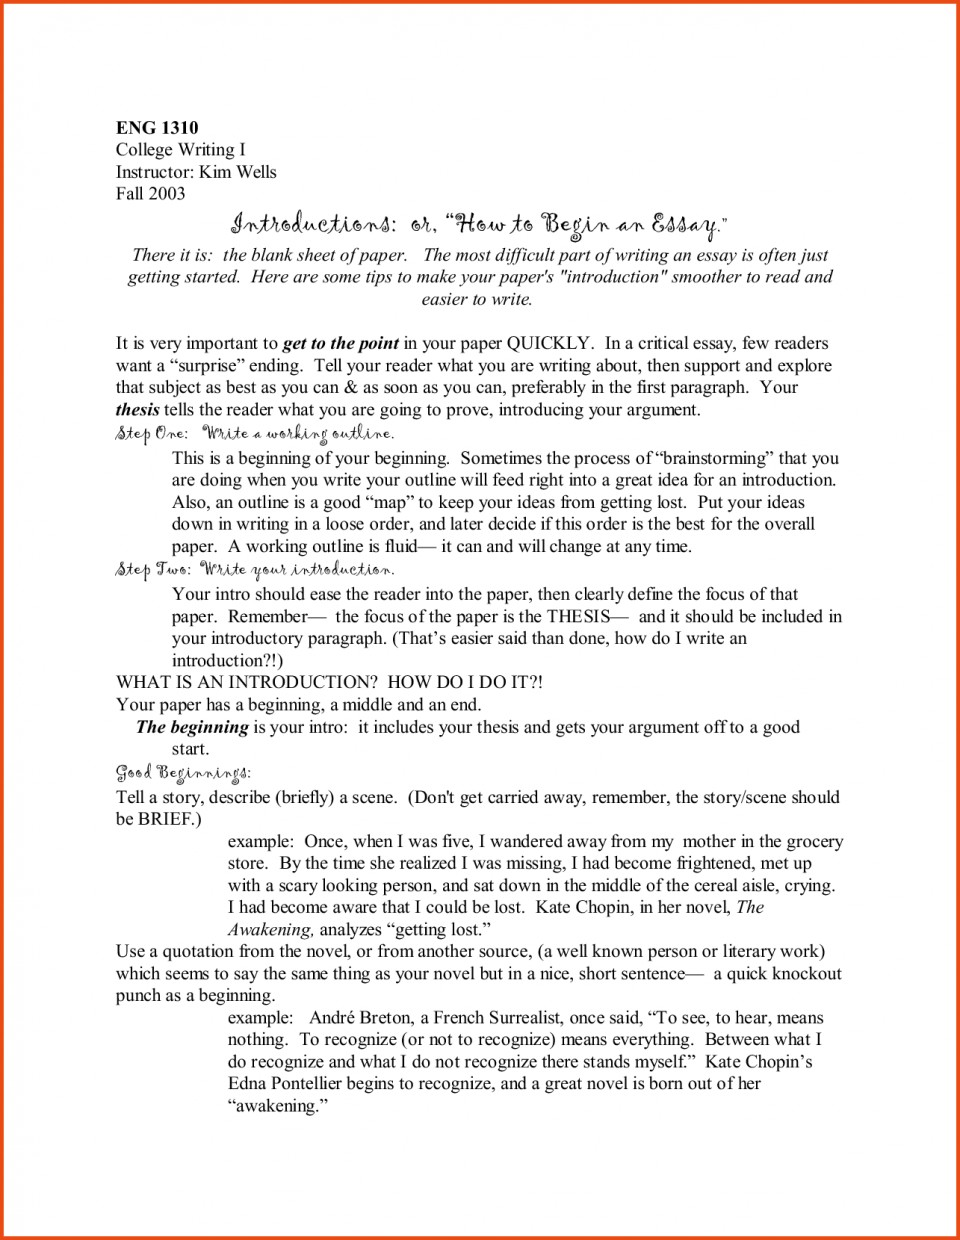 013 College Essays Applications Of Essay Consultant L How To Start An Amazing With A Hook Quote Analysis On Book 960